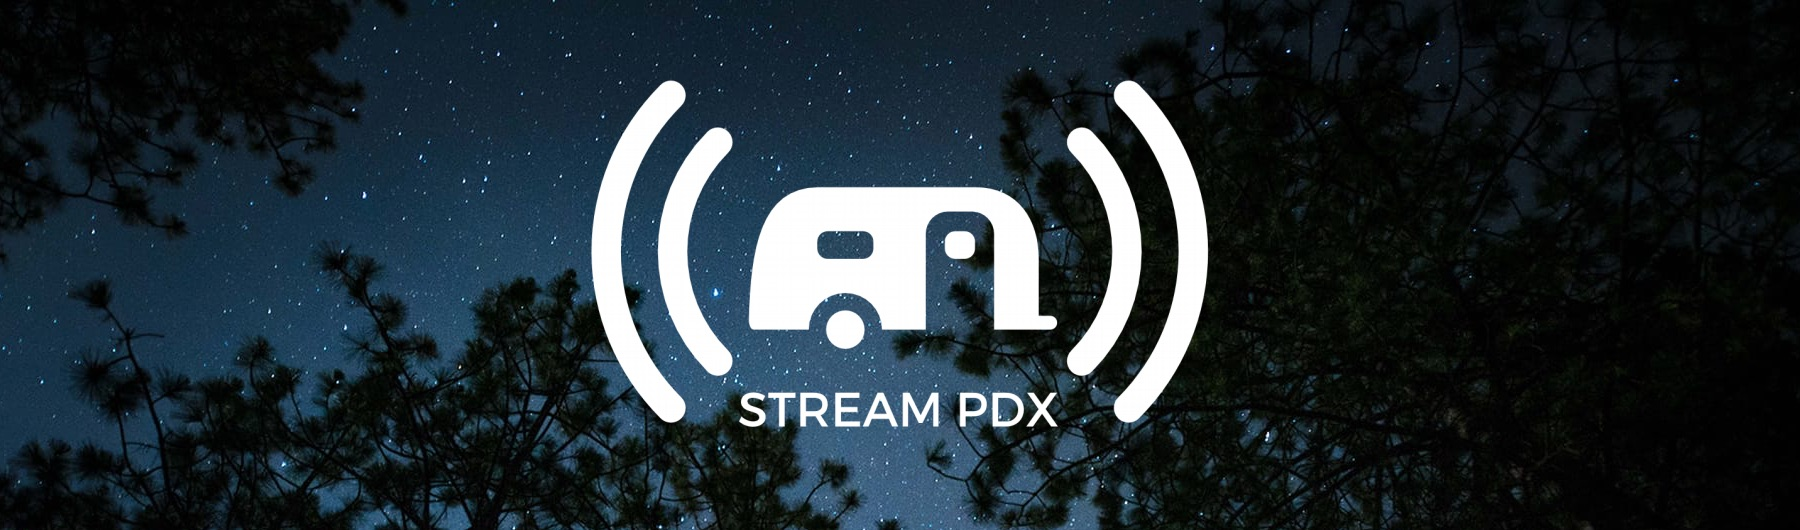 Second Monthly Stream PDX Meetup